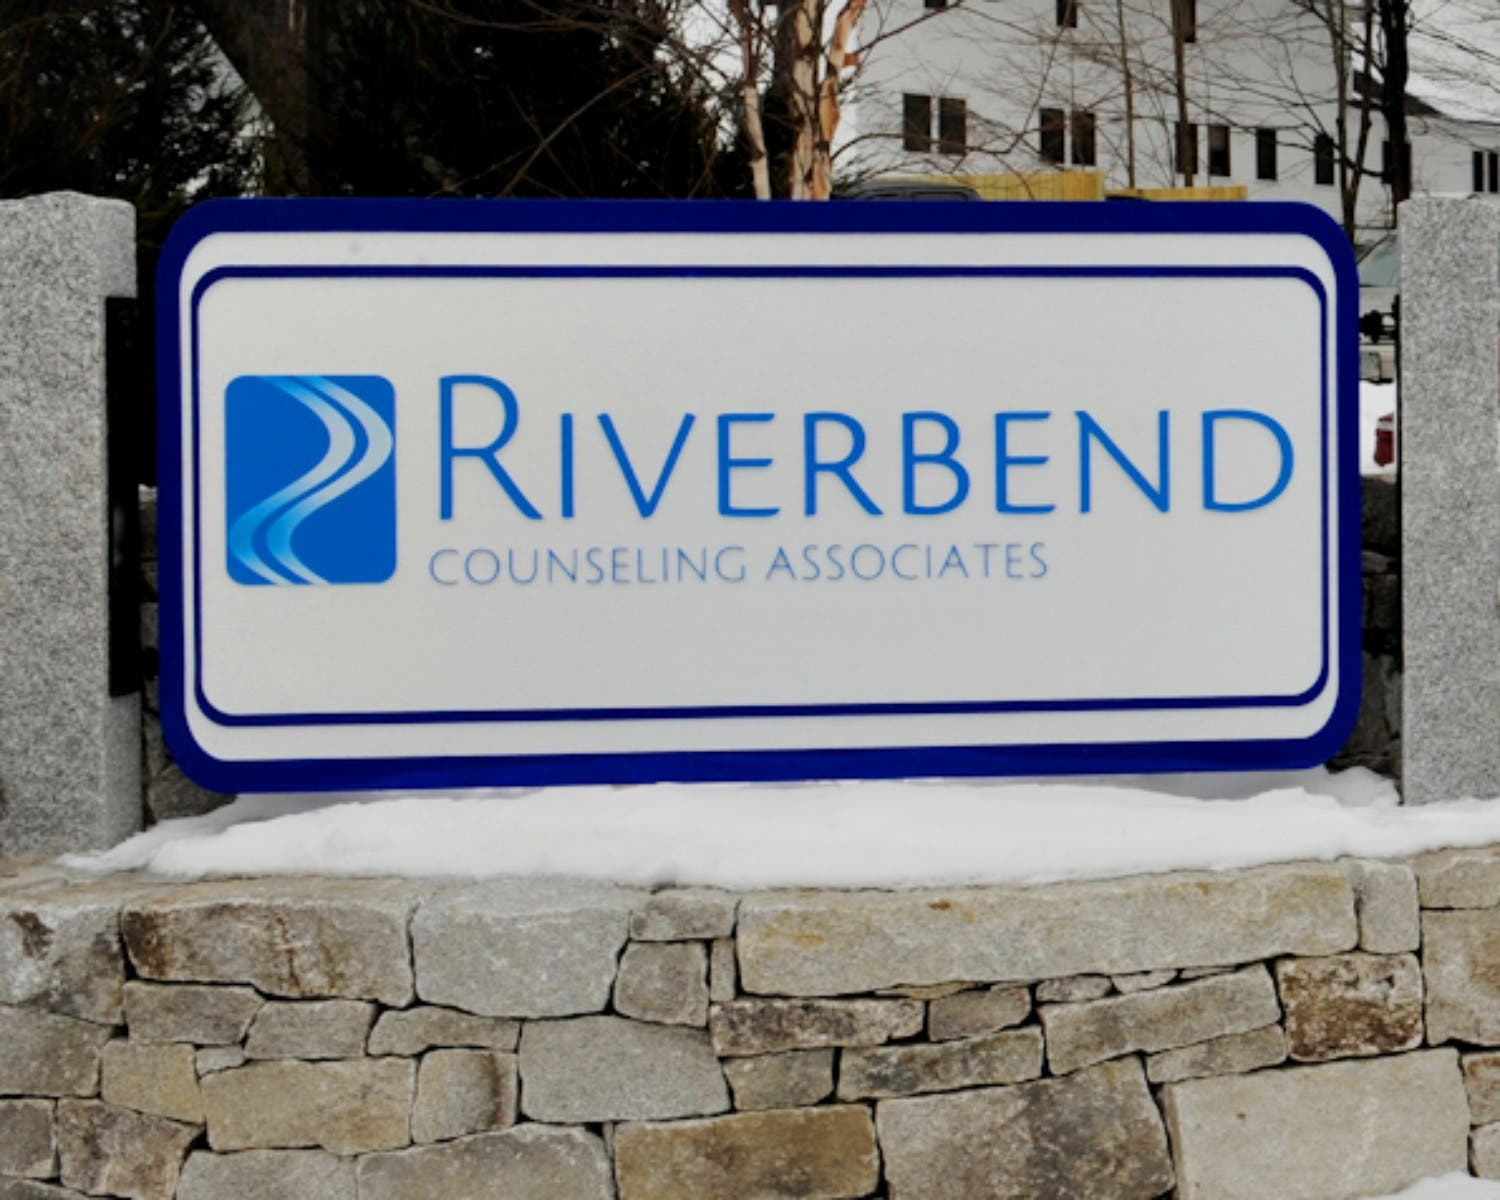 Riverbend Now Has Mobile Crisis Services | Concord, NH Patch